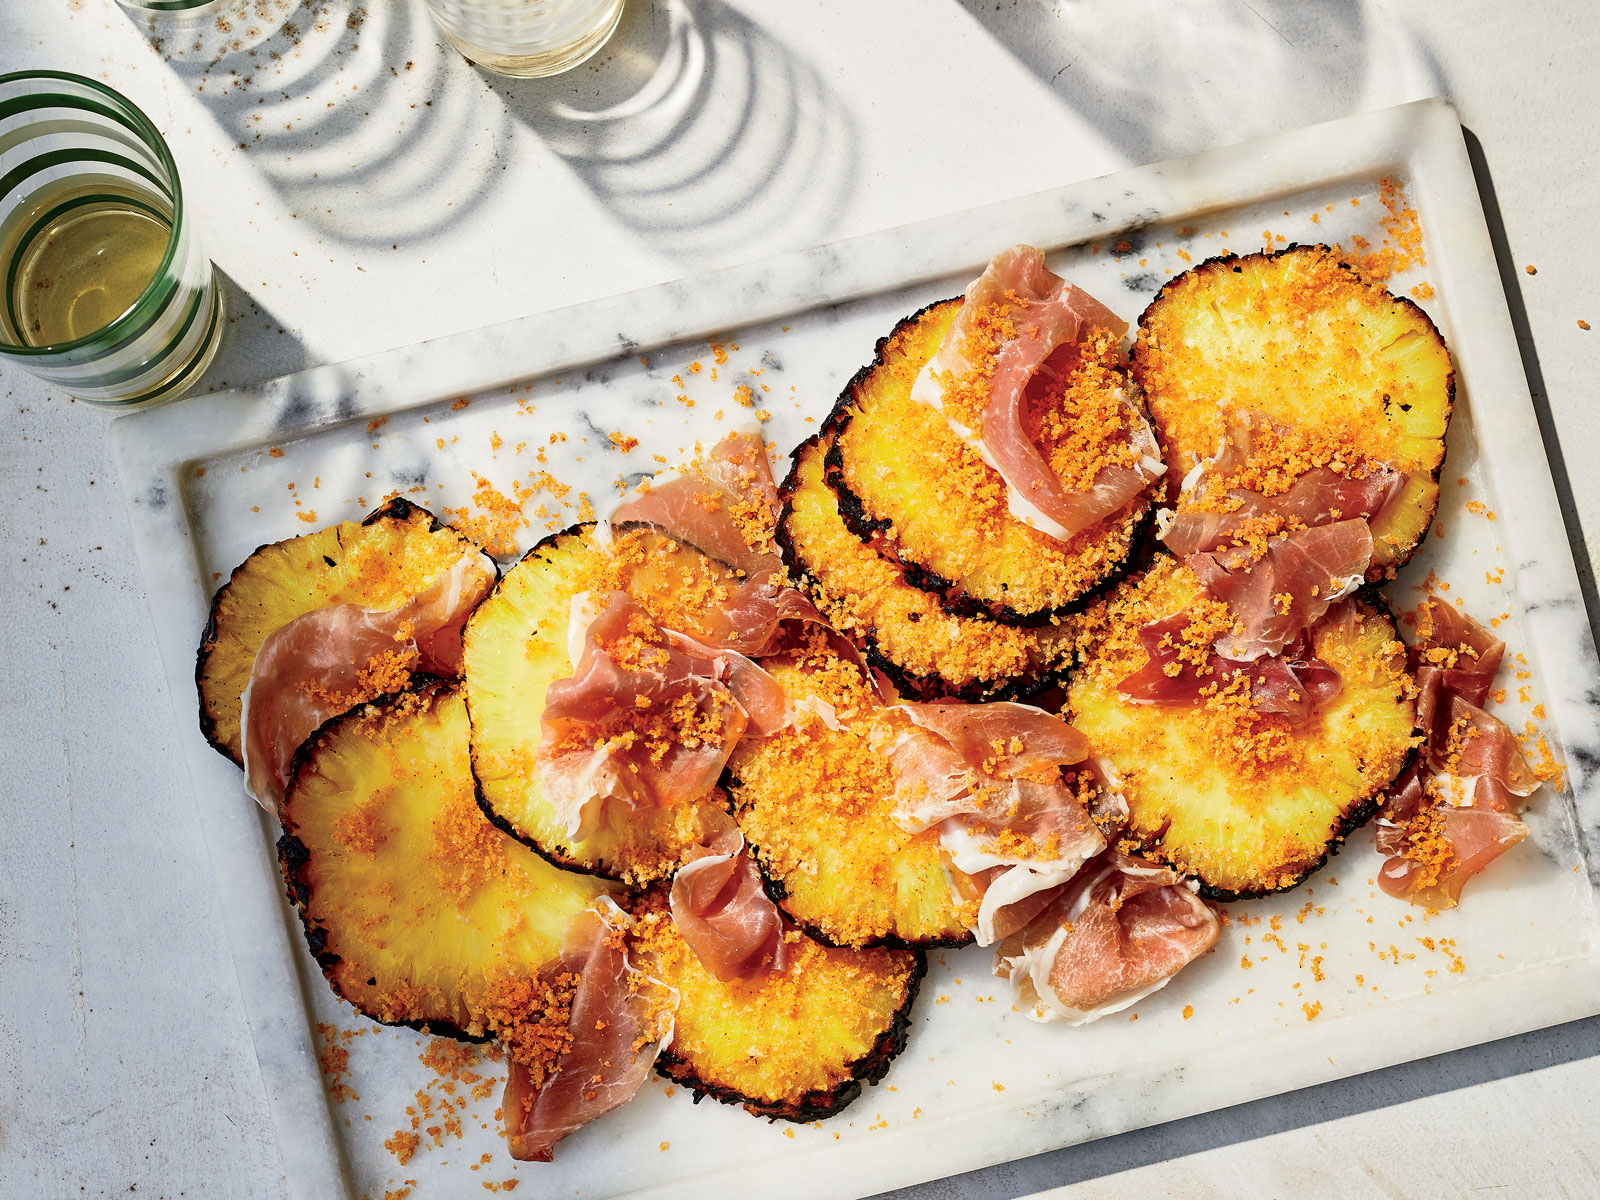 Grilled Pineapples with Barbecue-Spiced Breadcrumbs and Country Ham